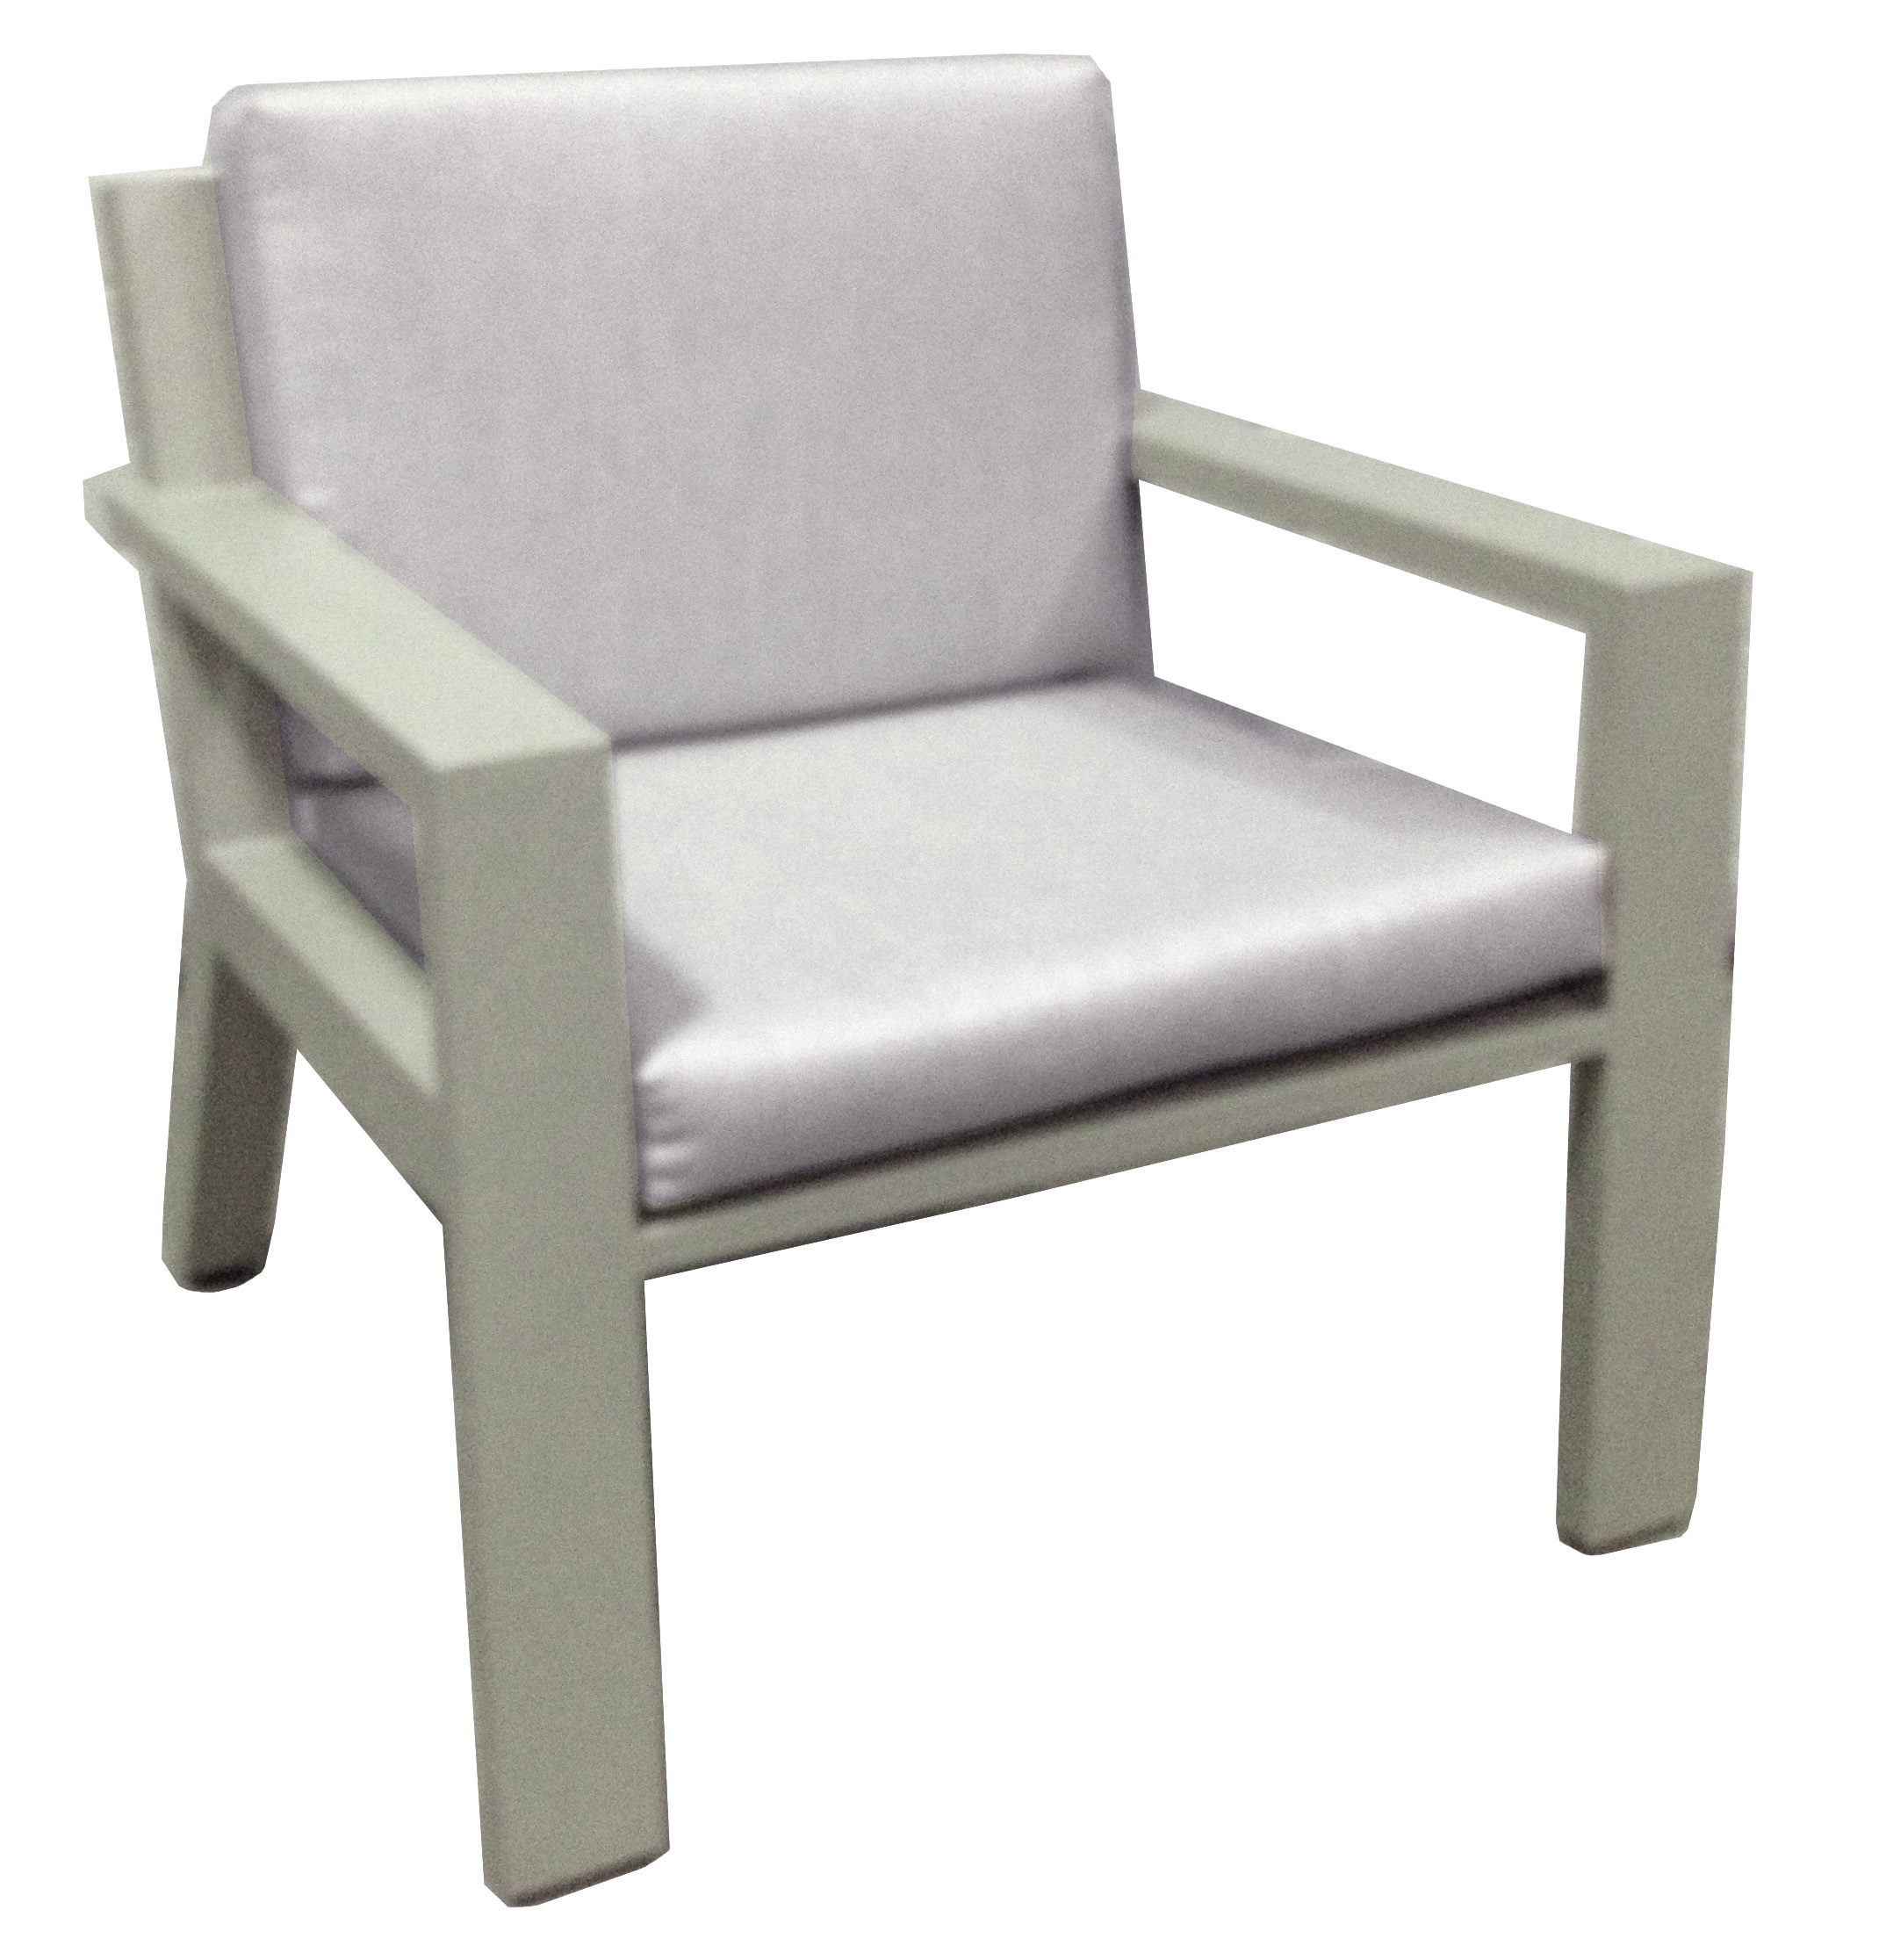 Borek Aluminium Low Dining Chair